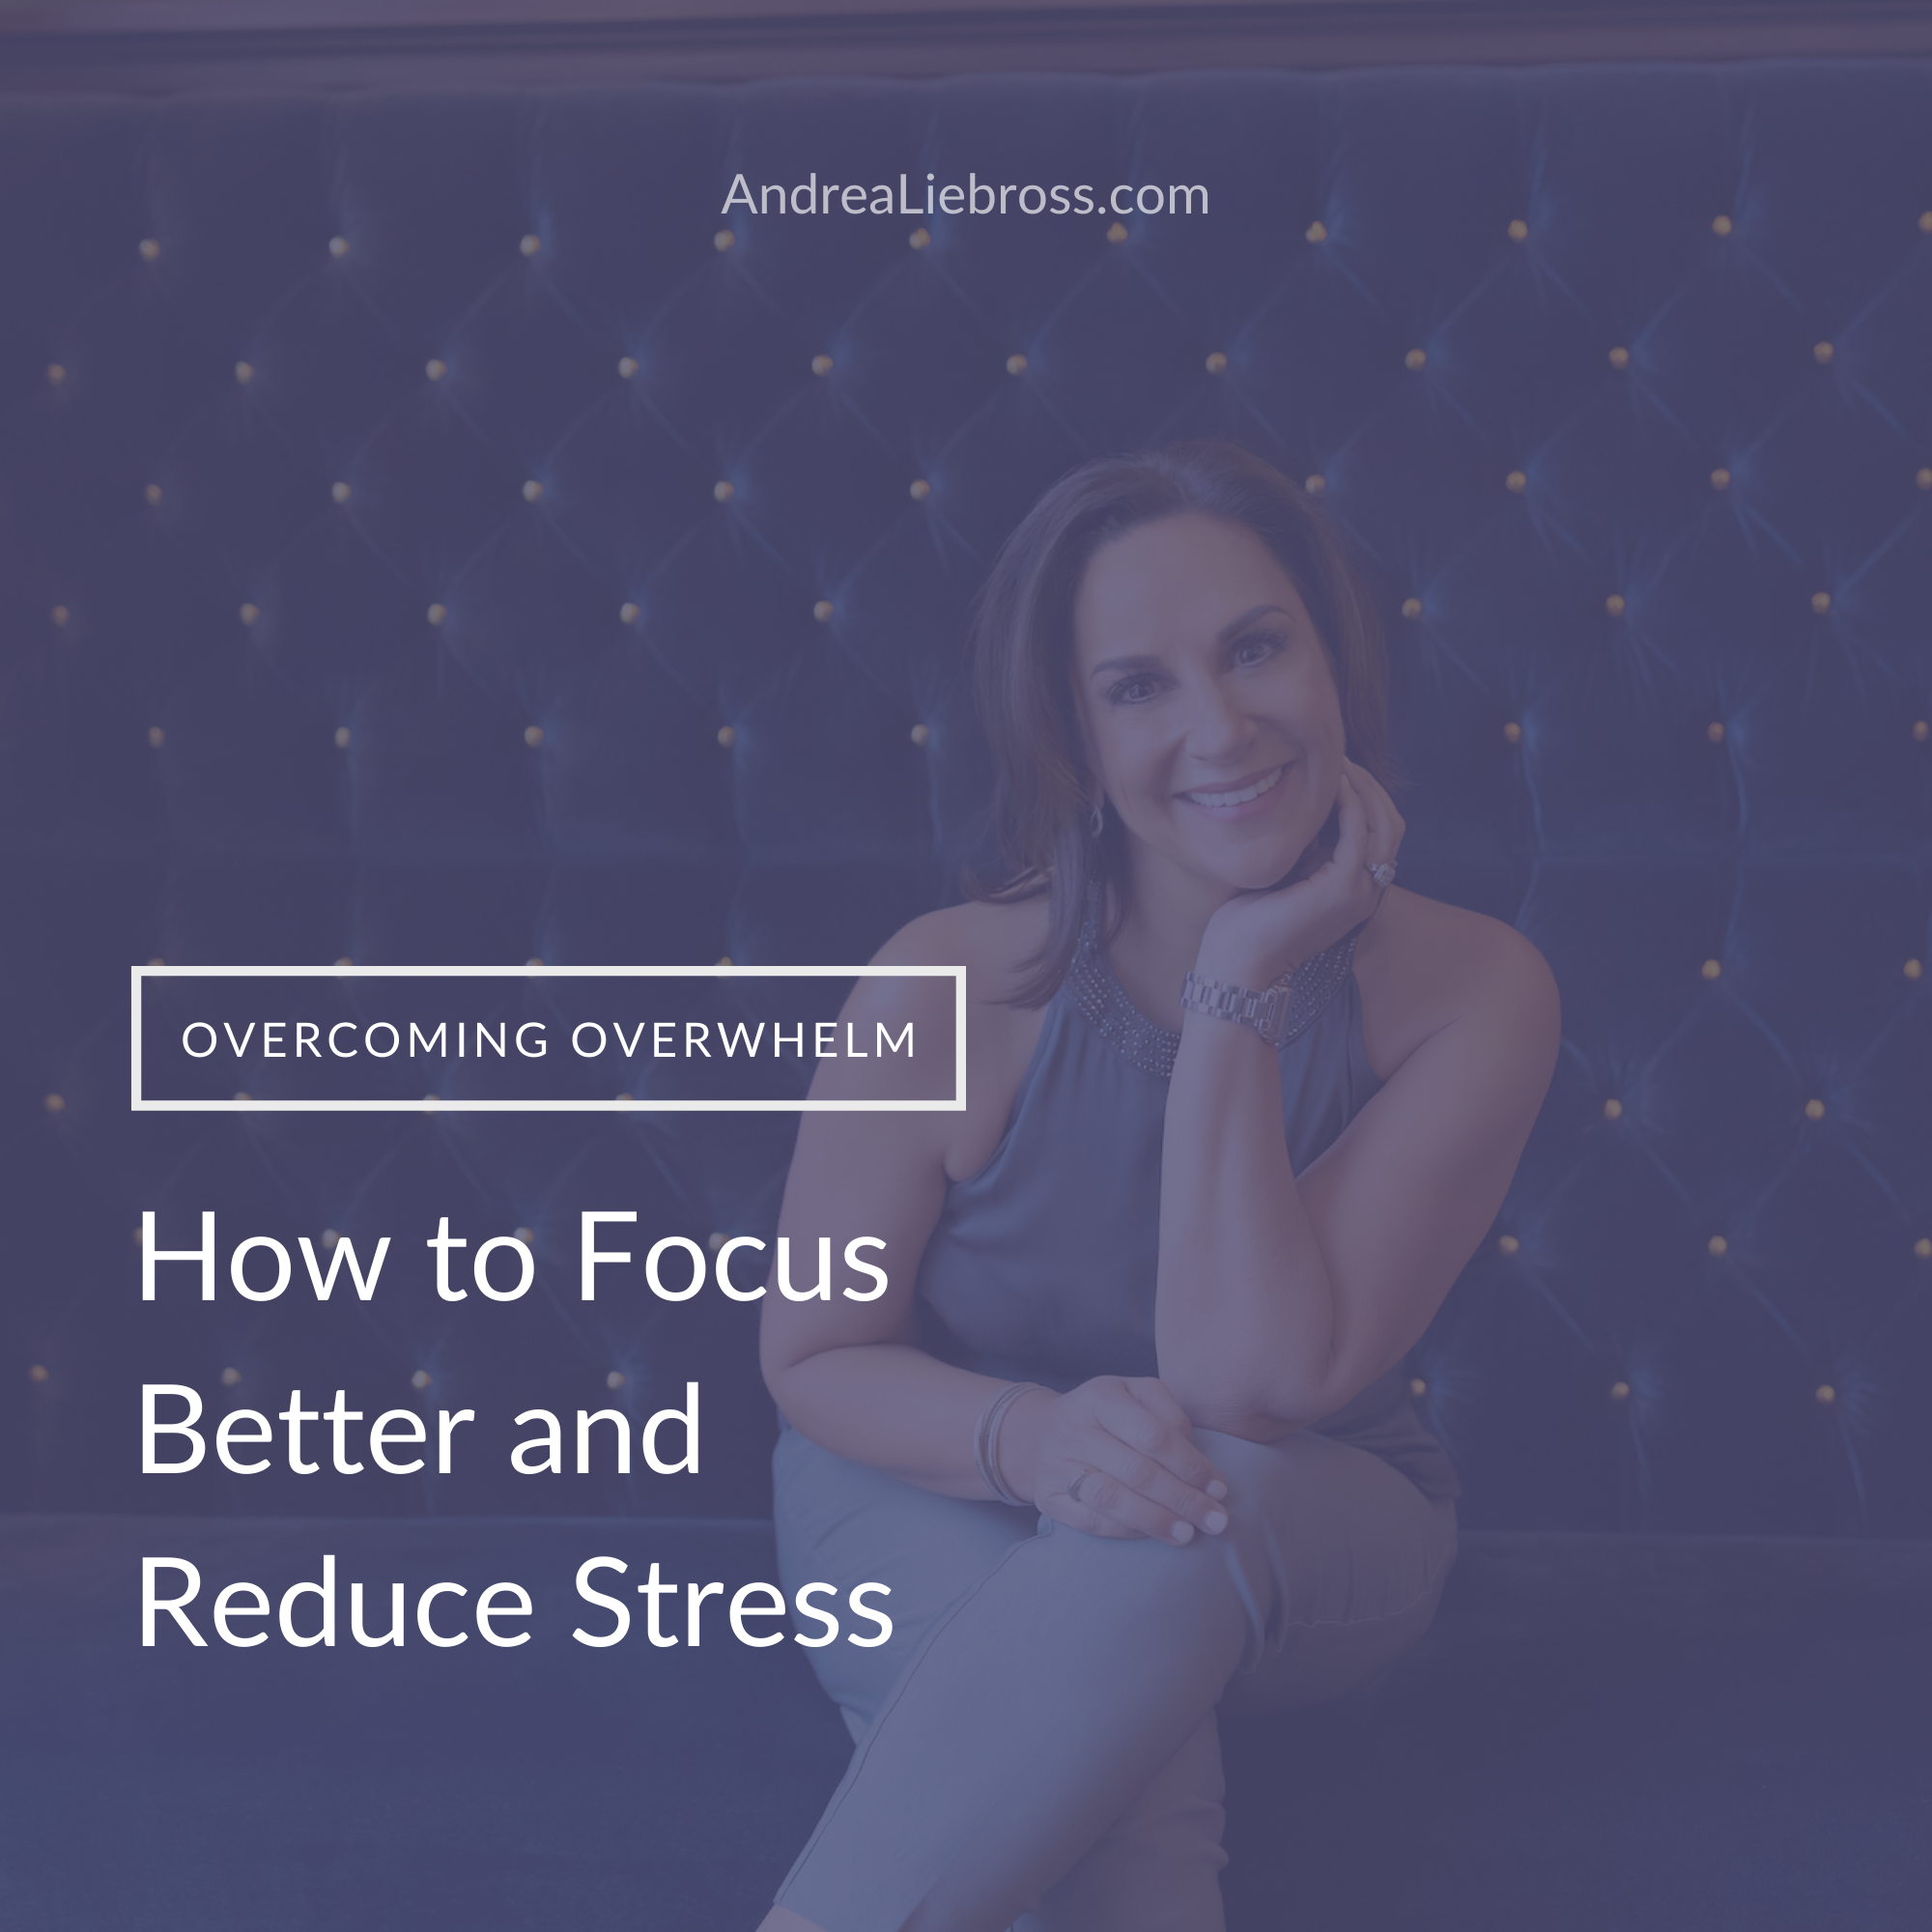 How to Get Focus Better and Reduce Stress